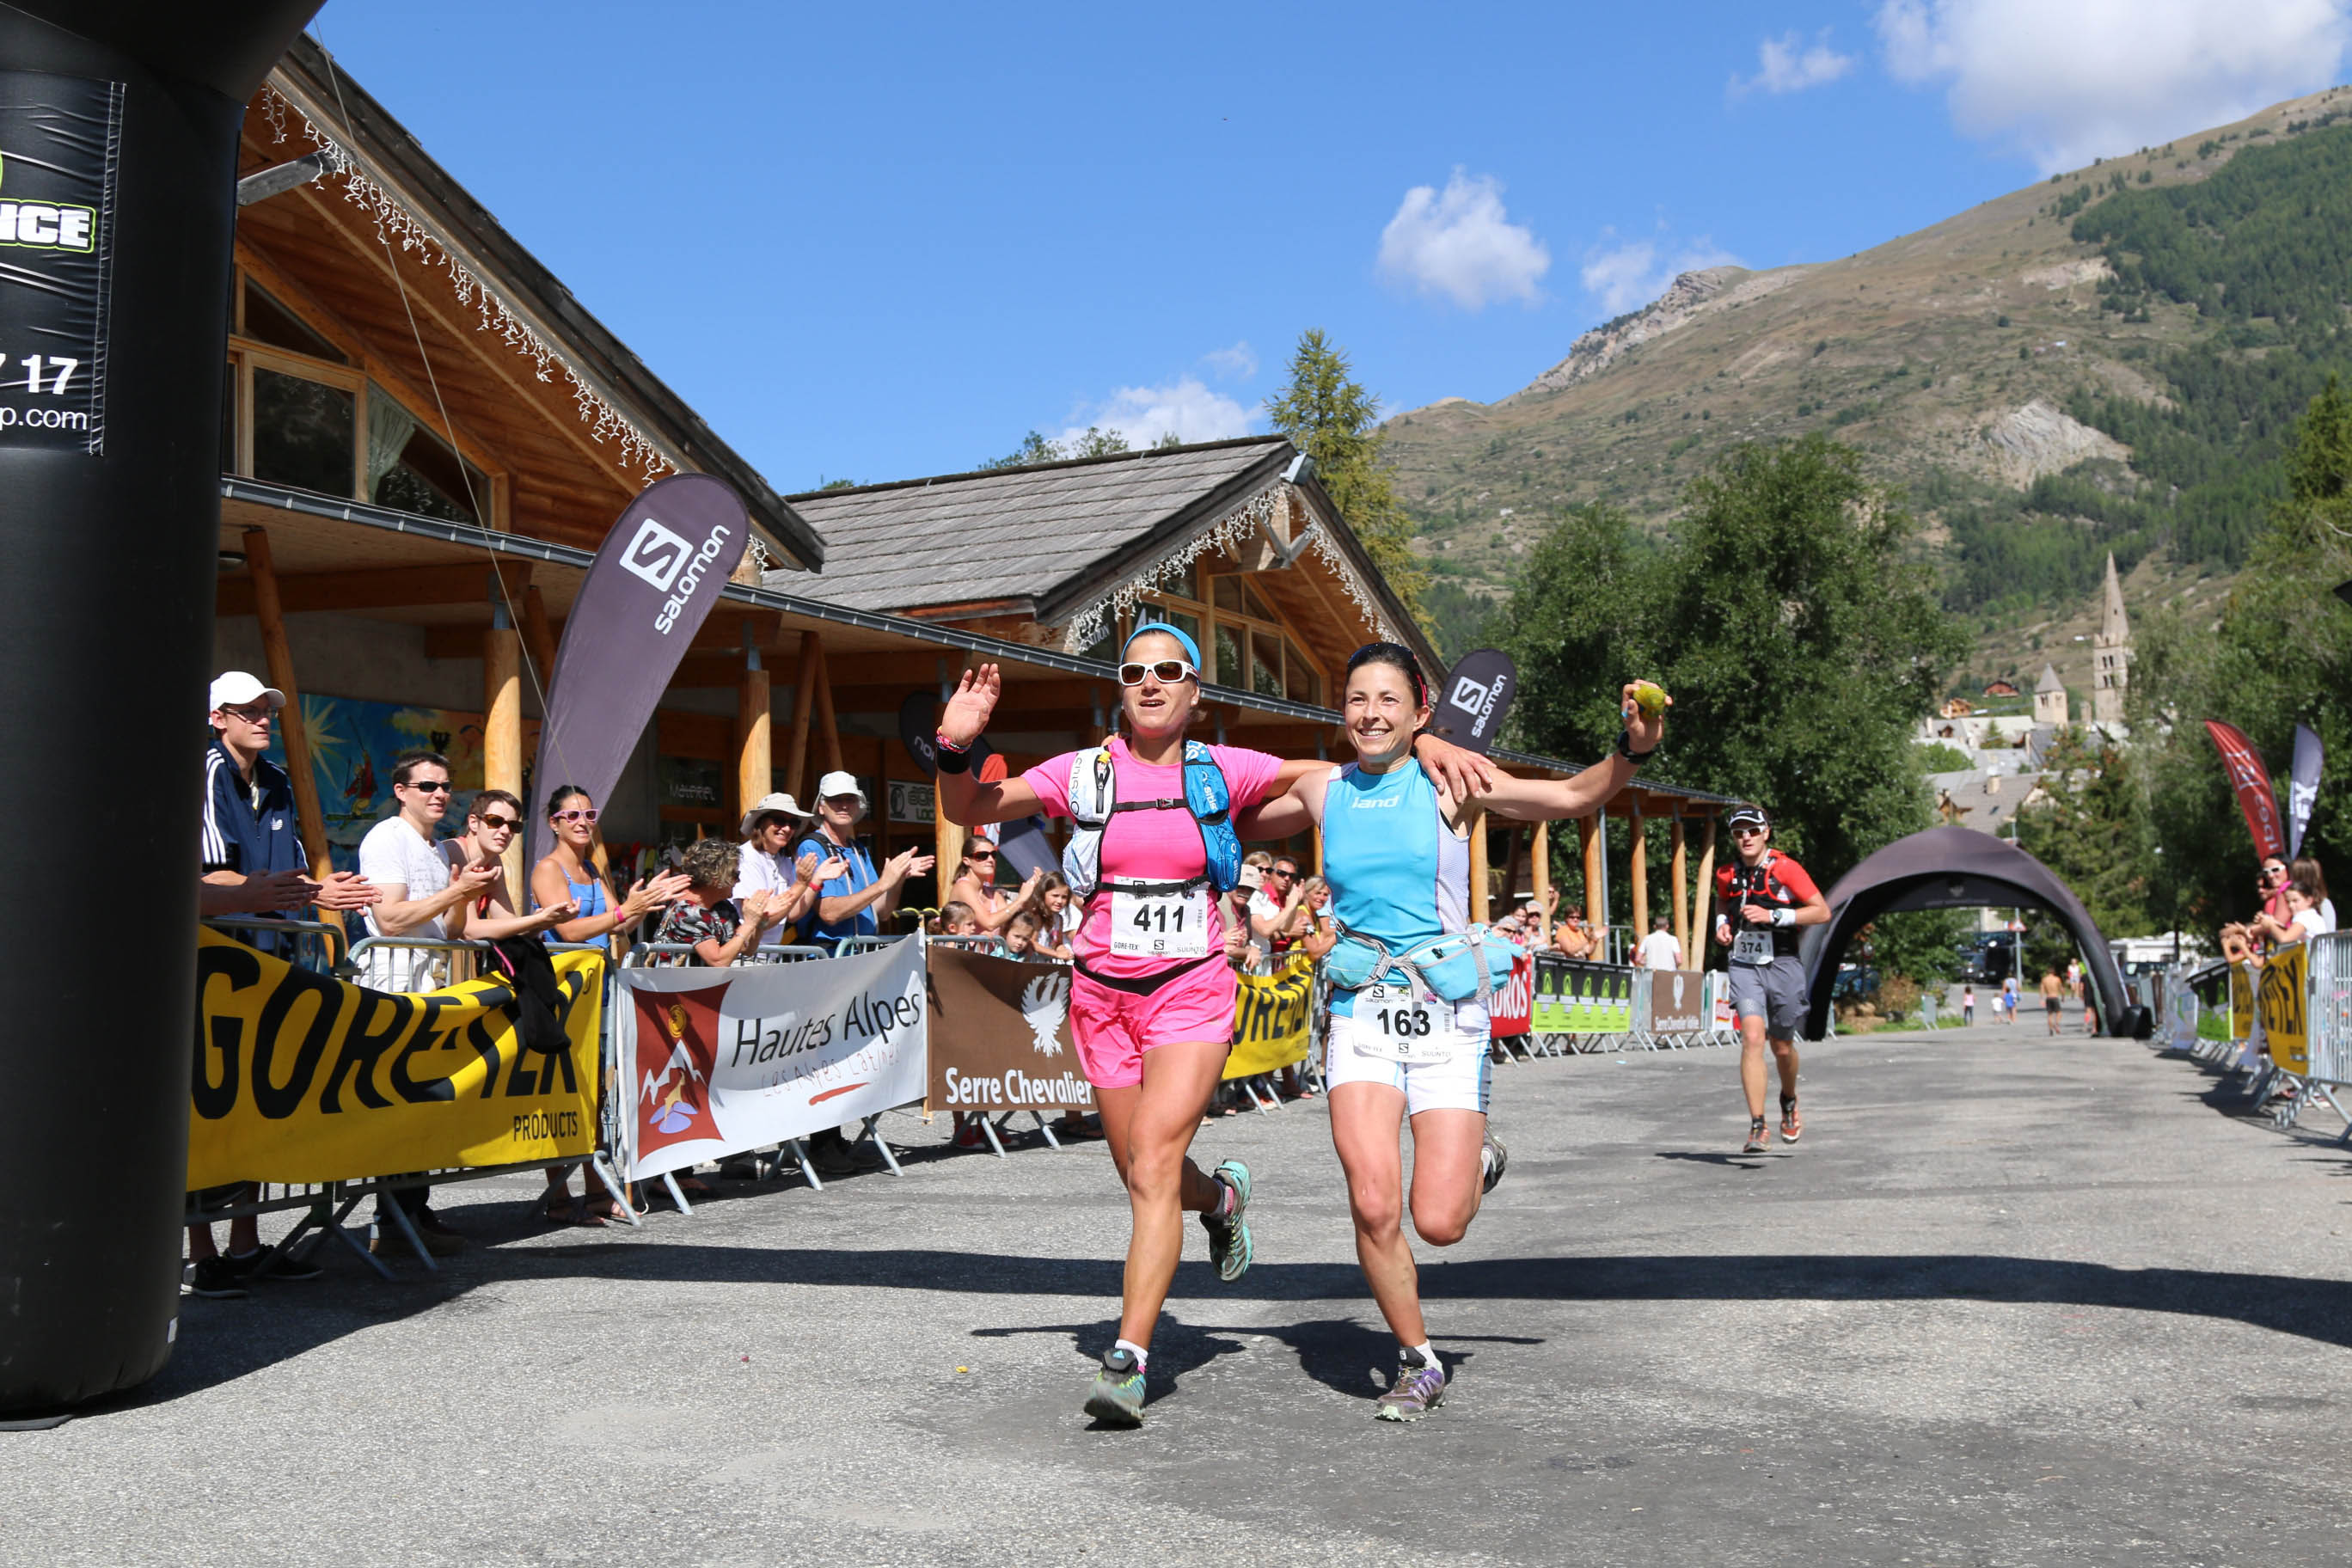 5 Serre Che trail Salomon 2014 de g à d Maud Gobert et Virginie Govignon 1er ex aequo  27 km photo Robert Goin